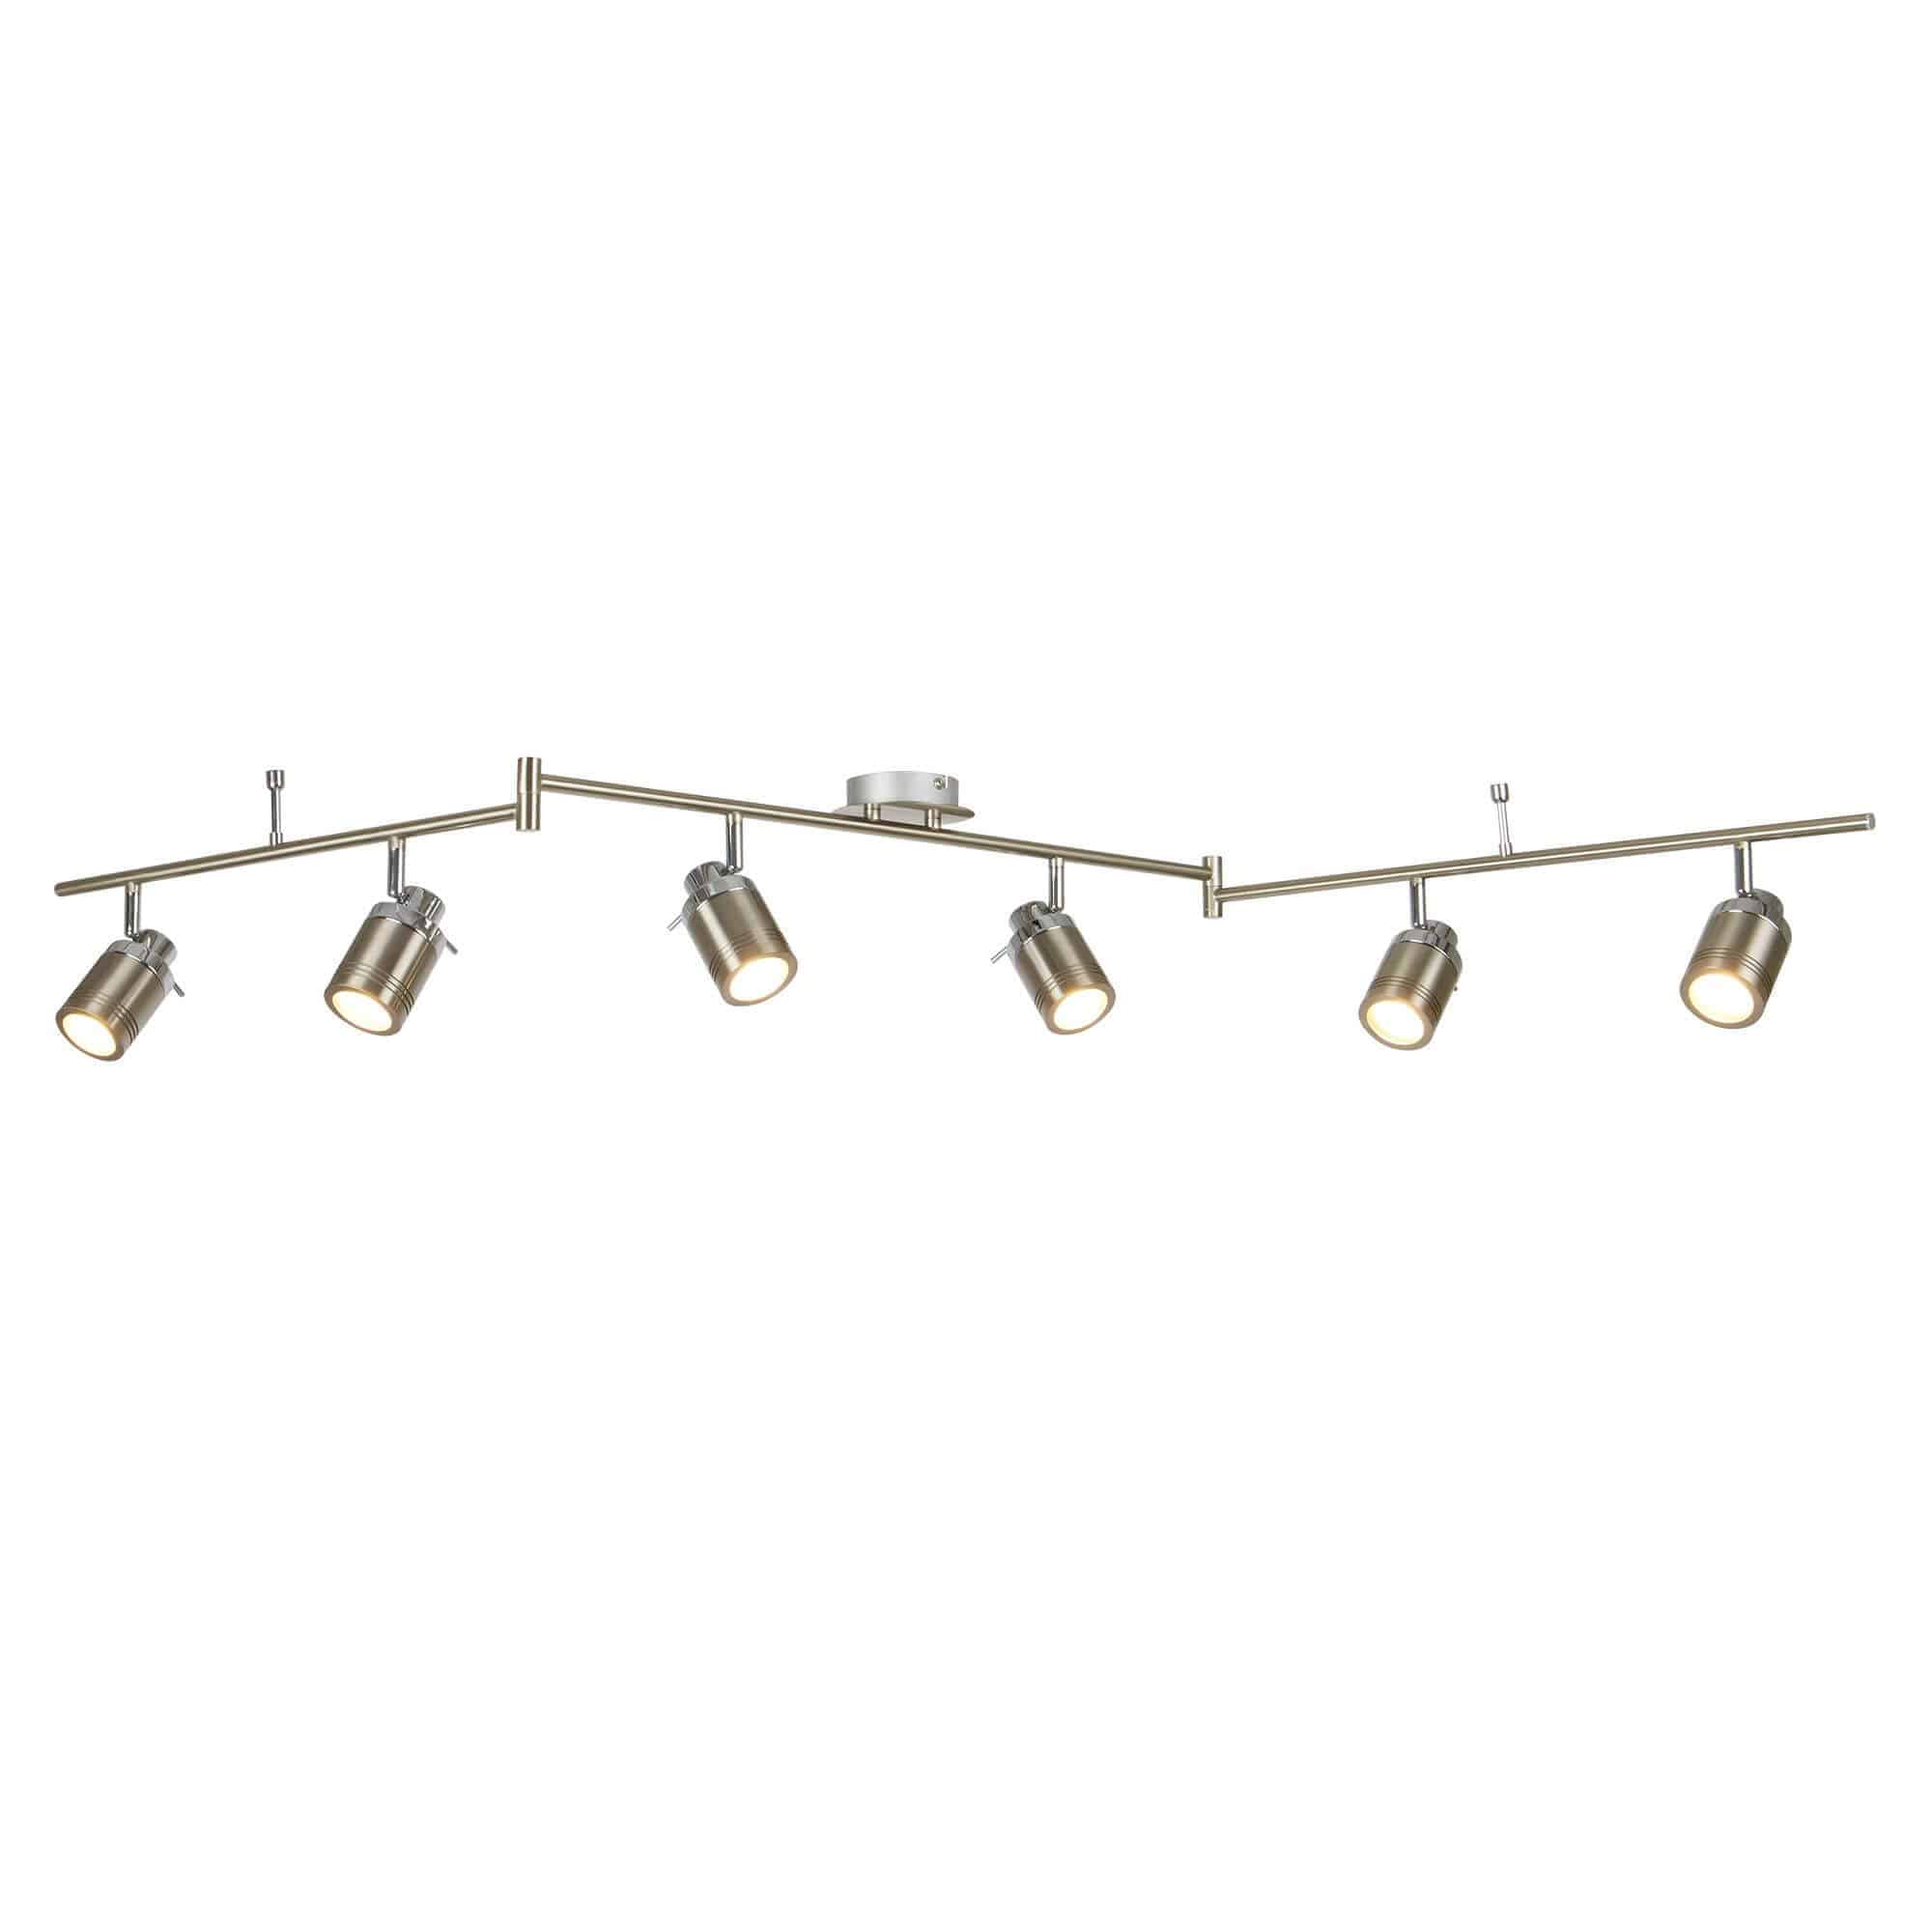 6606SS – Searchlight Samson Satin Silver 6 Light IP44 Bathroom Spot SplitBar